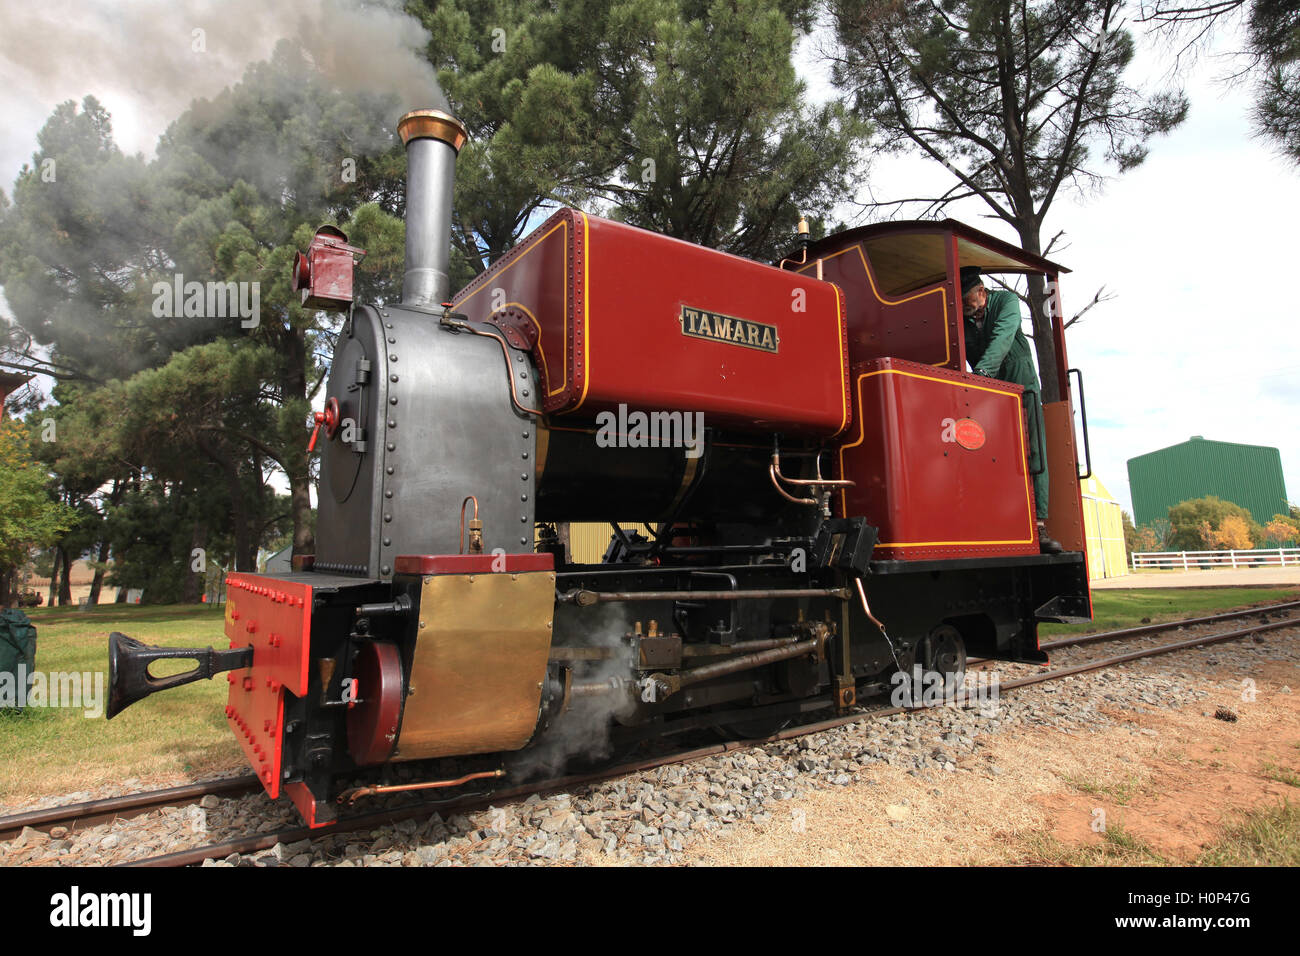 A steam locomotive which is part of a collection on Sandstone estate - Stock Image